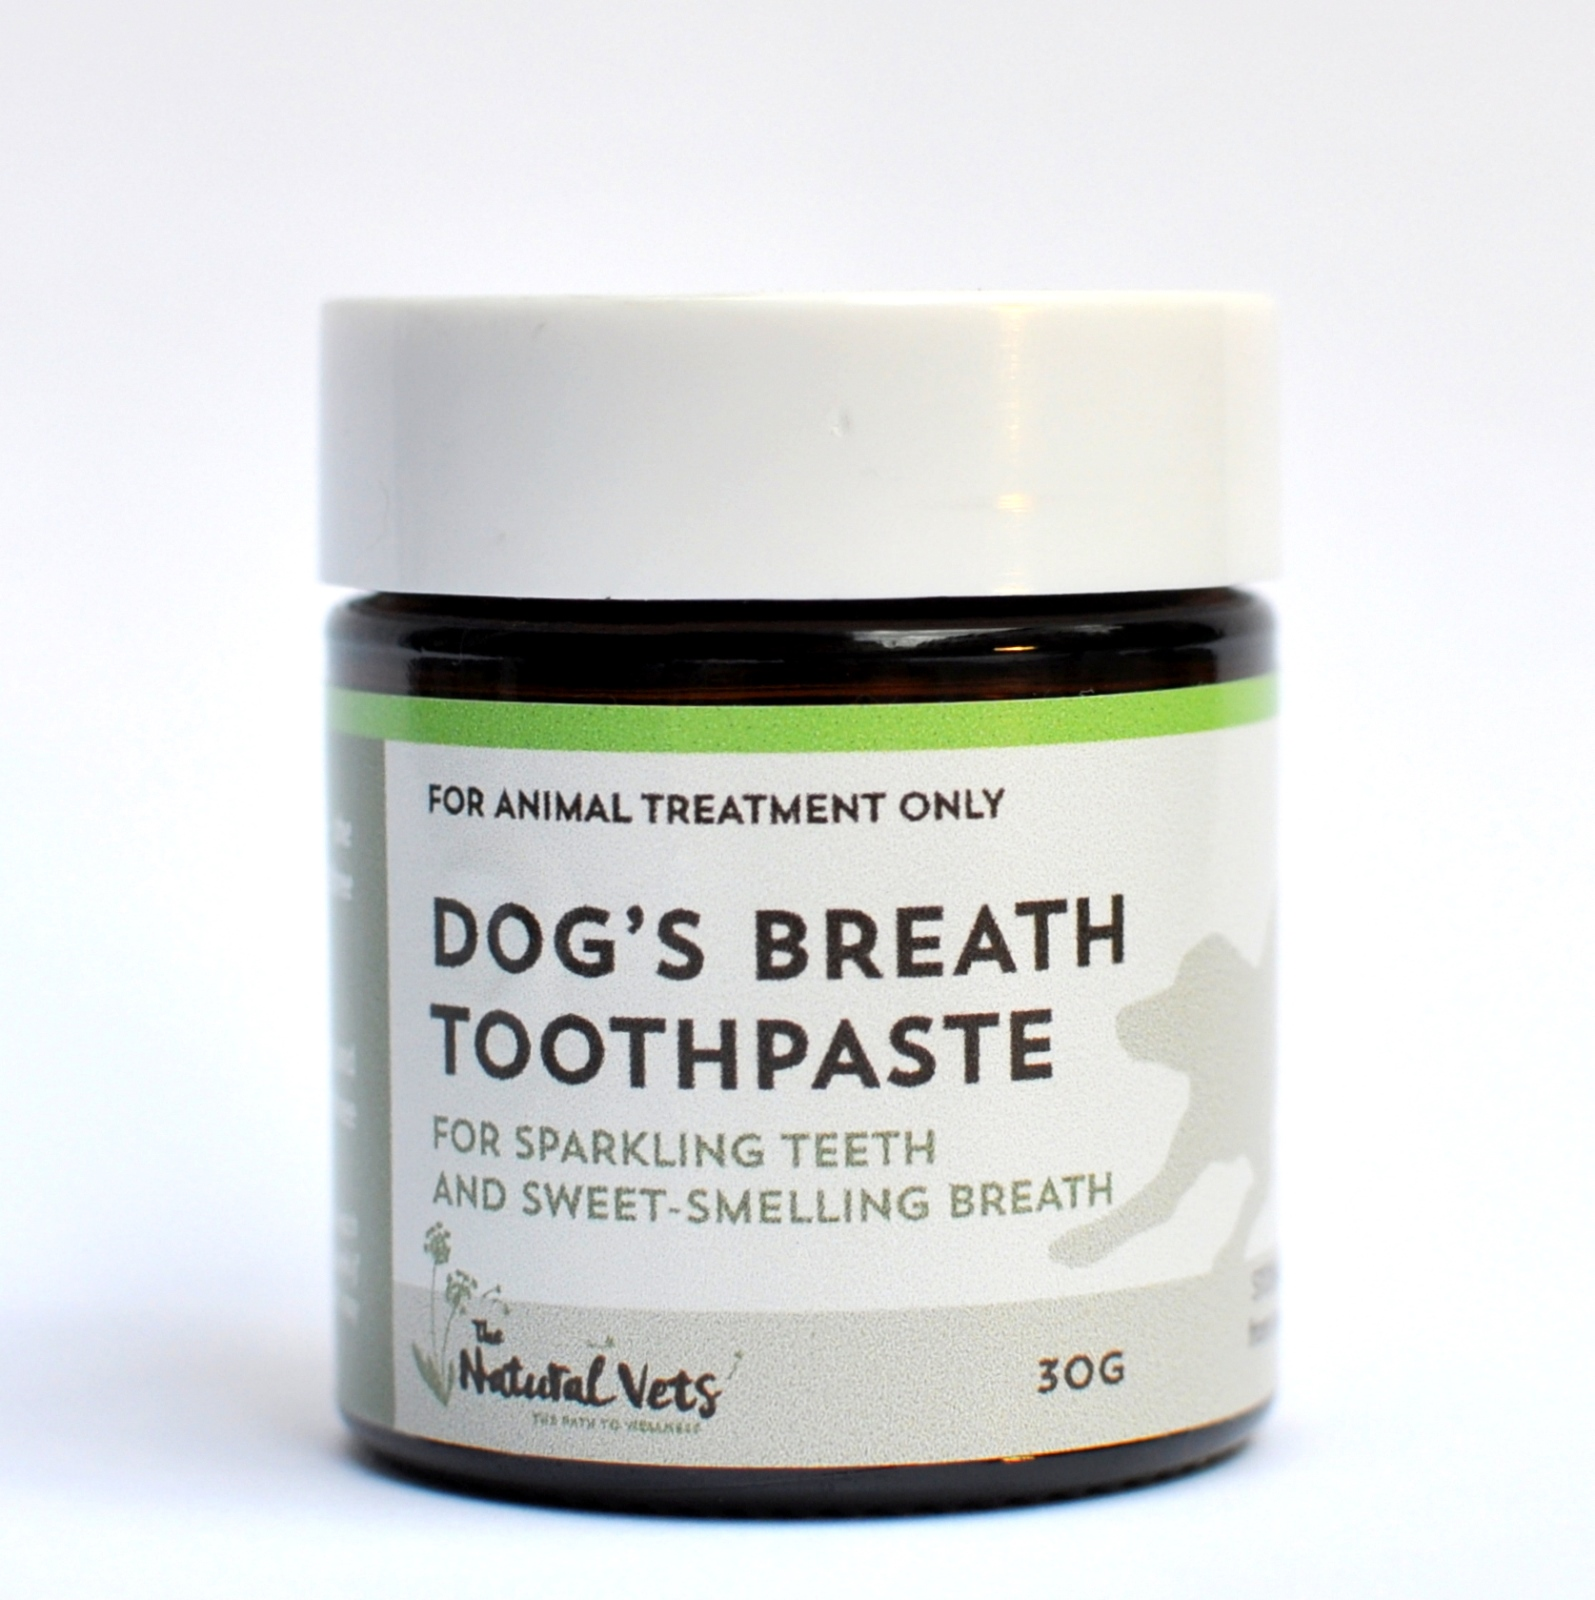 Dog's Breath Toothpaste - 30g - Sparkling Teeth and Sweet Smelling Breath